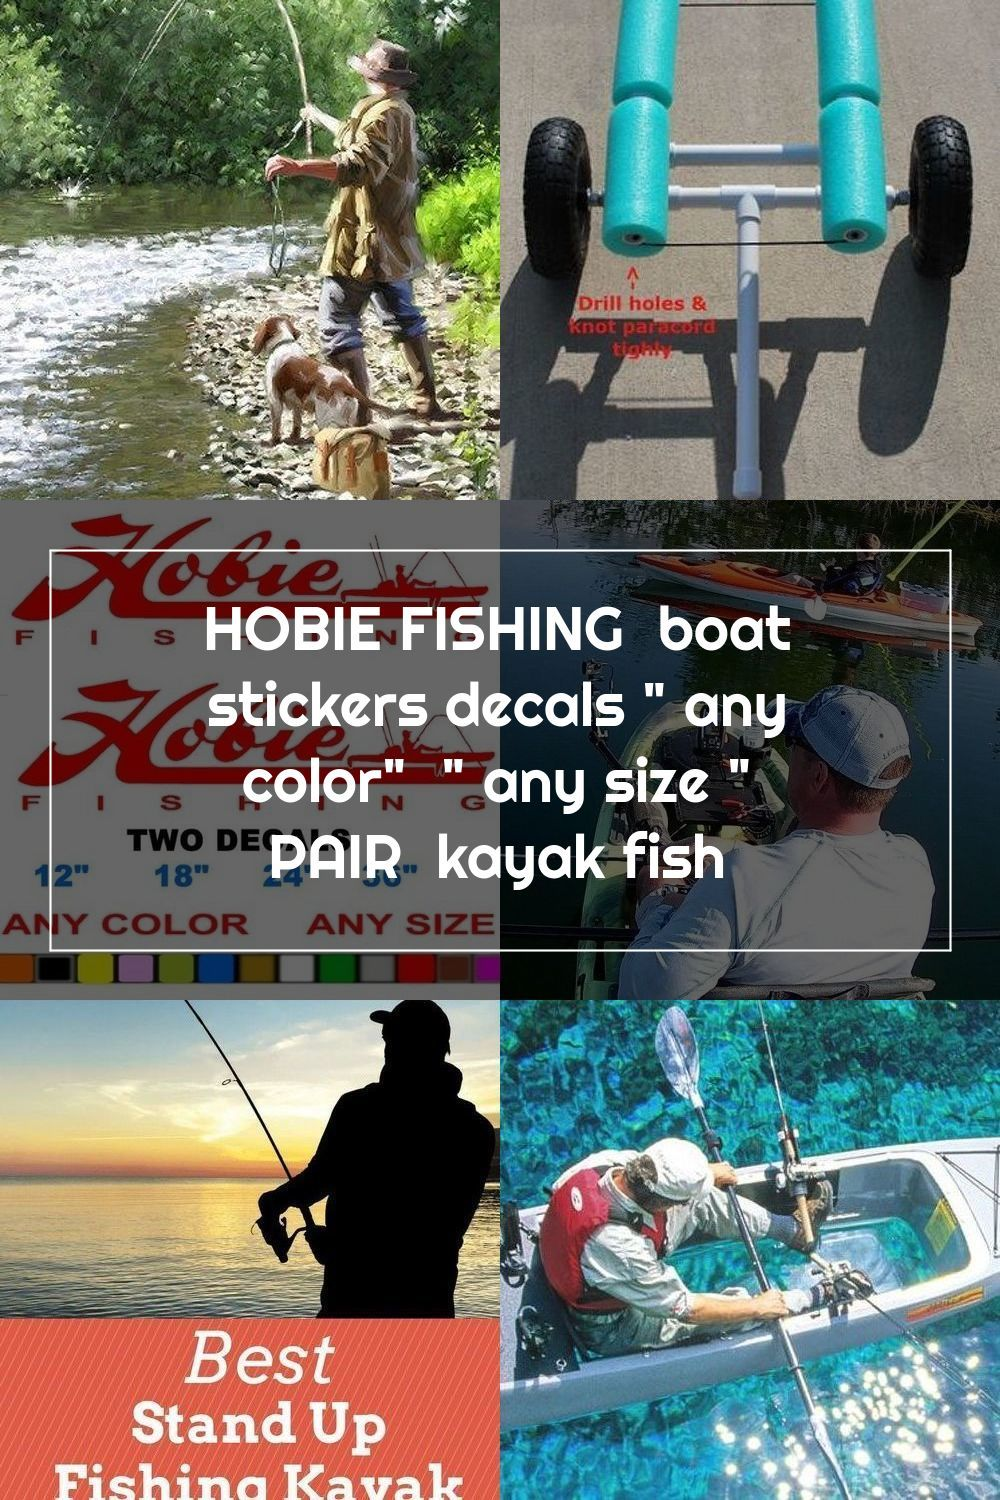 Hobie Fishing Boat Stickers Decals Any Color Any Size Pair Kayak Fish